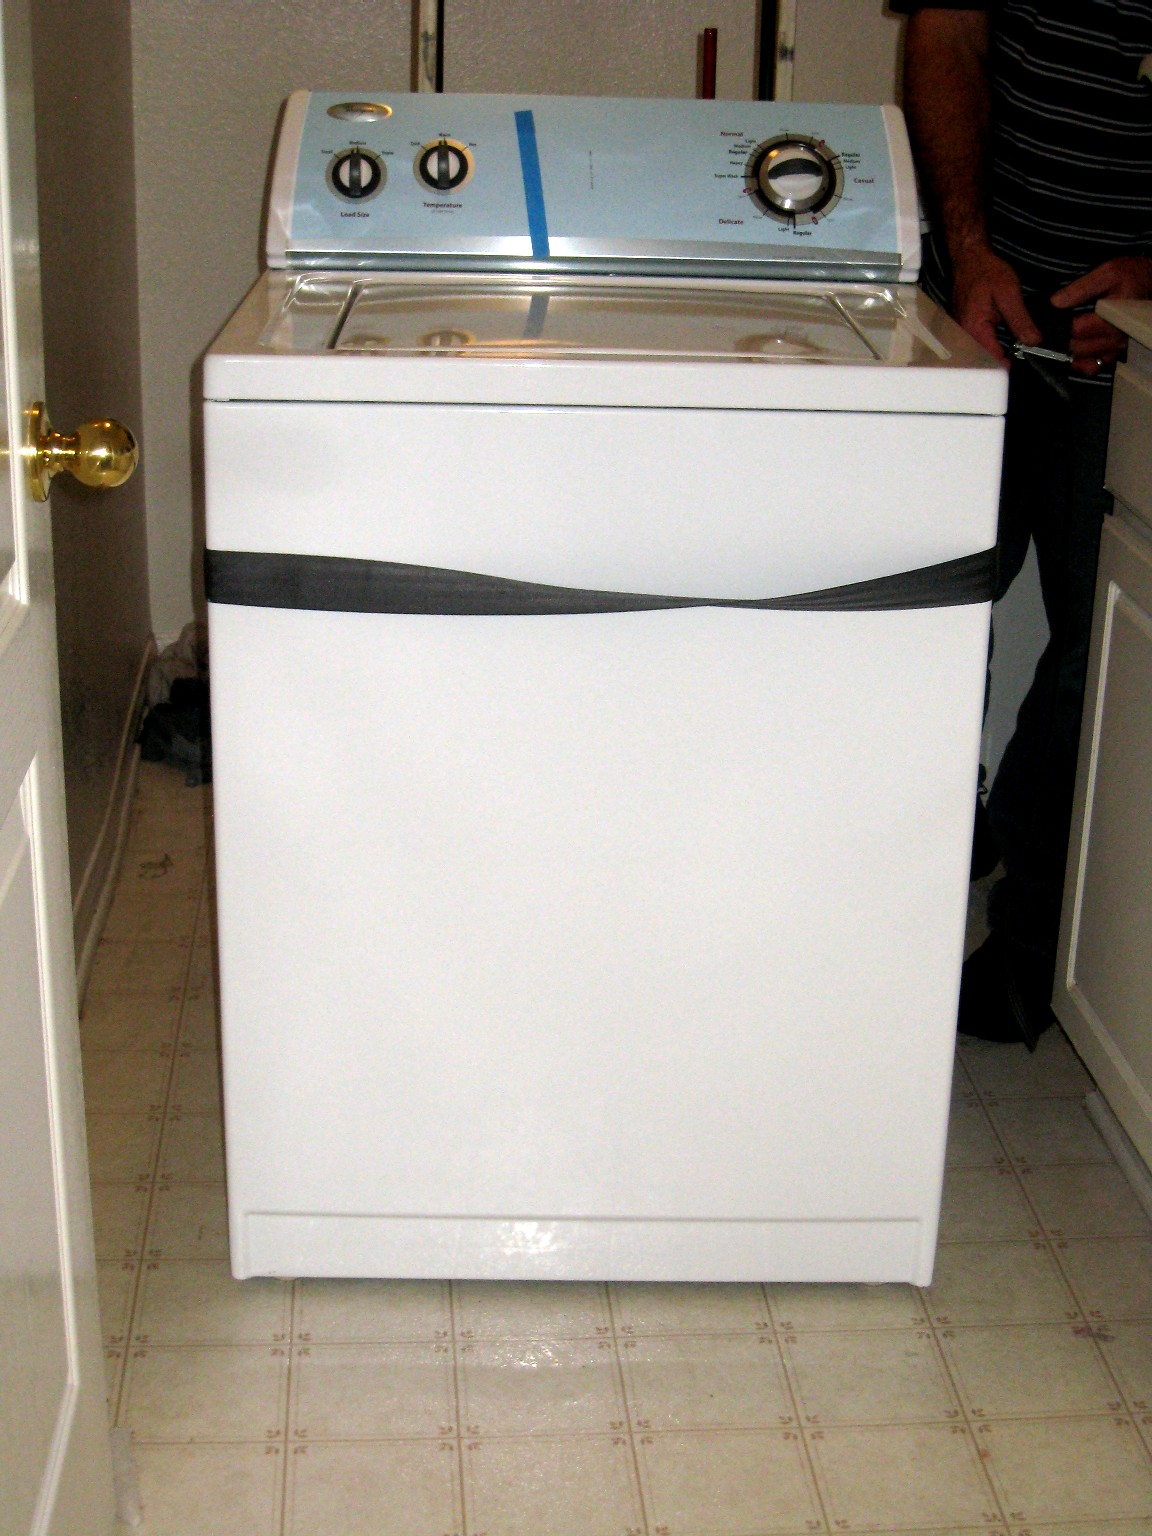 New Washer And Dryer How We Saved Money On A New Washer And Dryer Life As Mom